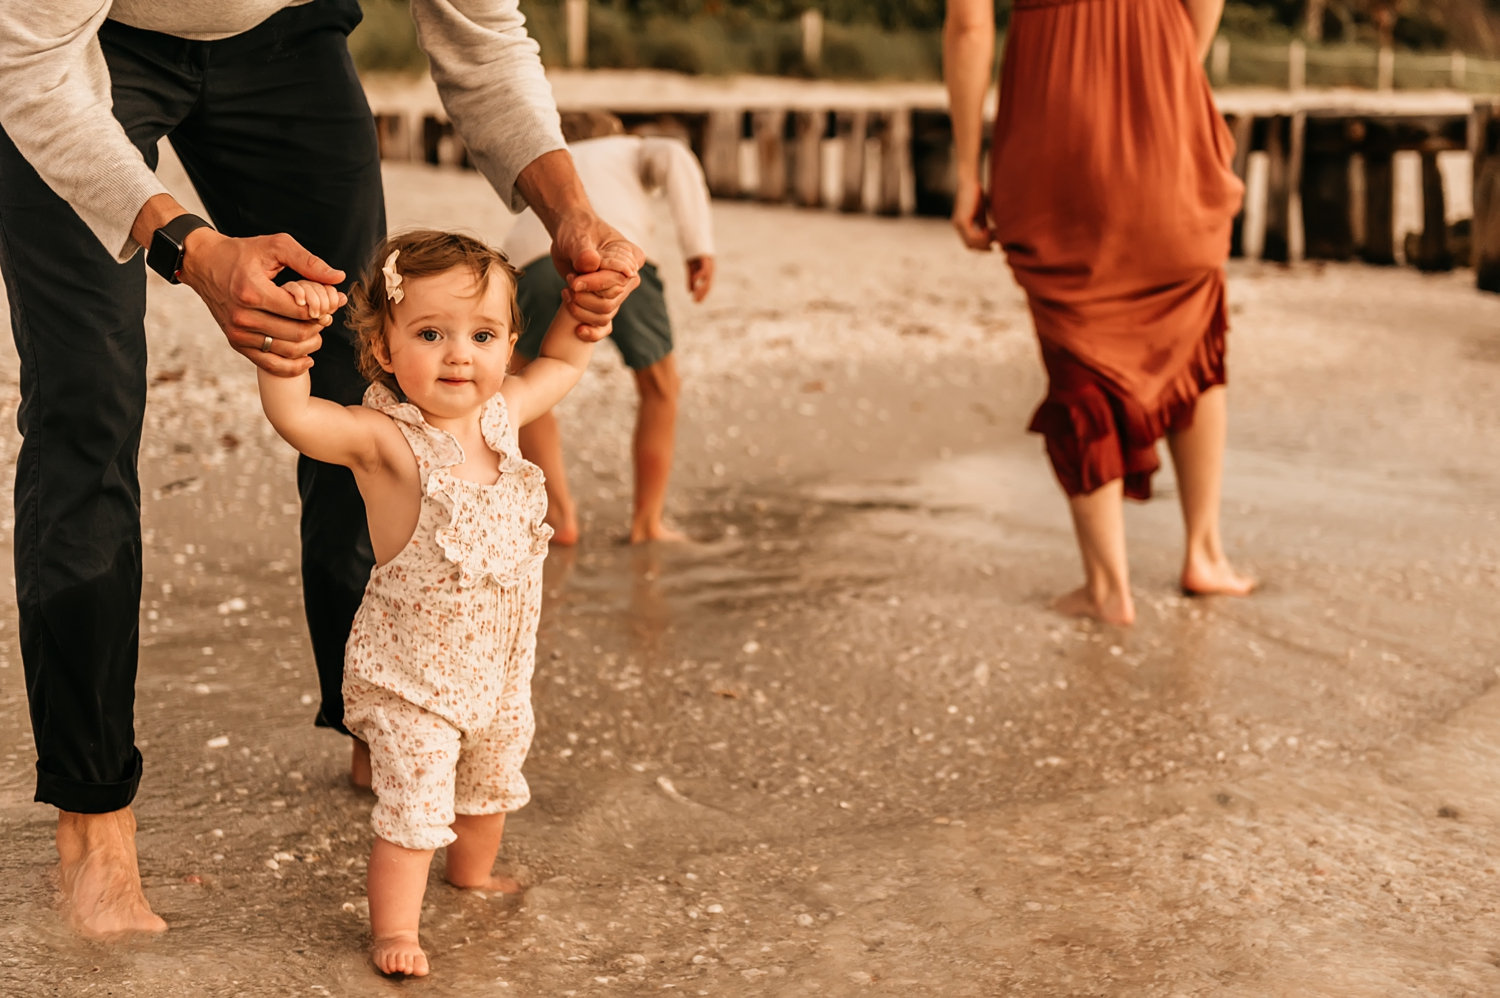 baby beach portrait with family in background, toes in the water, Rya Duncklee